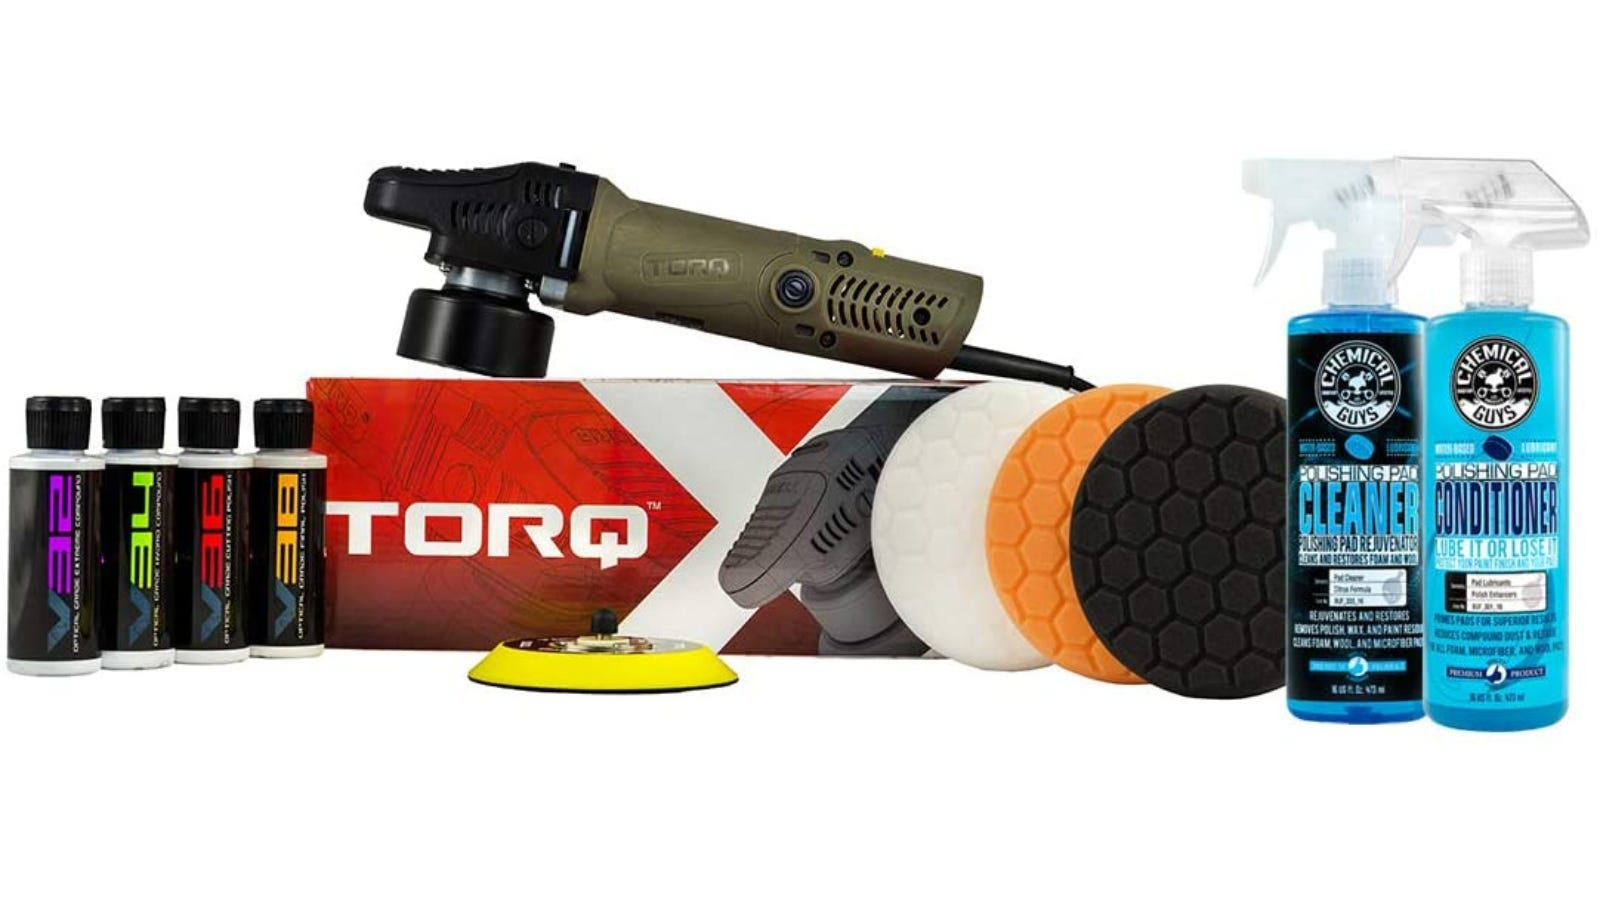 The Torq car polishing device displayed on top of its packing with several bottles of car polishing products beside it.